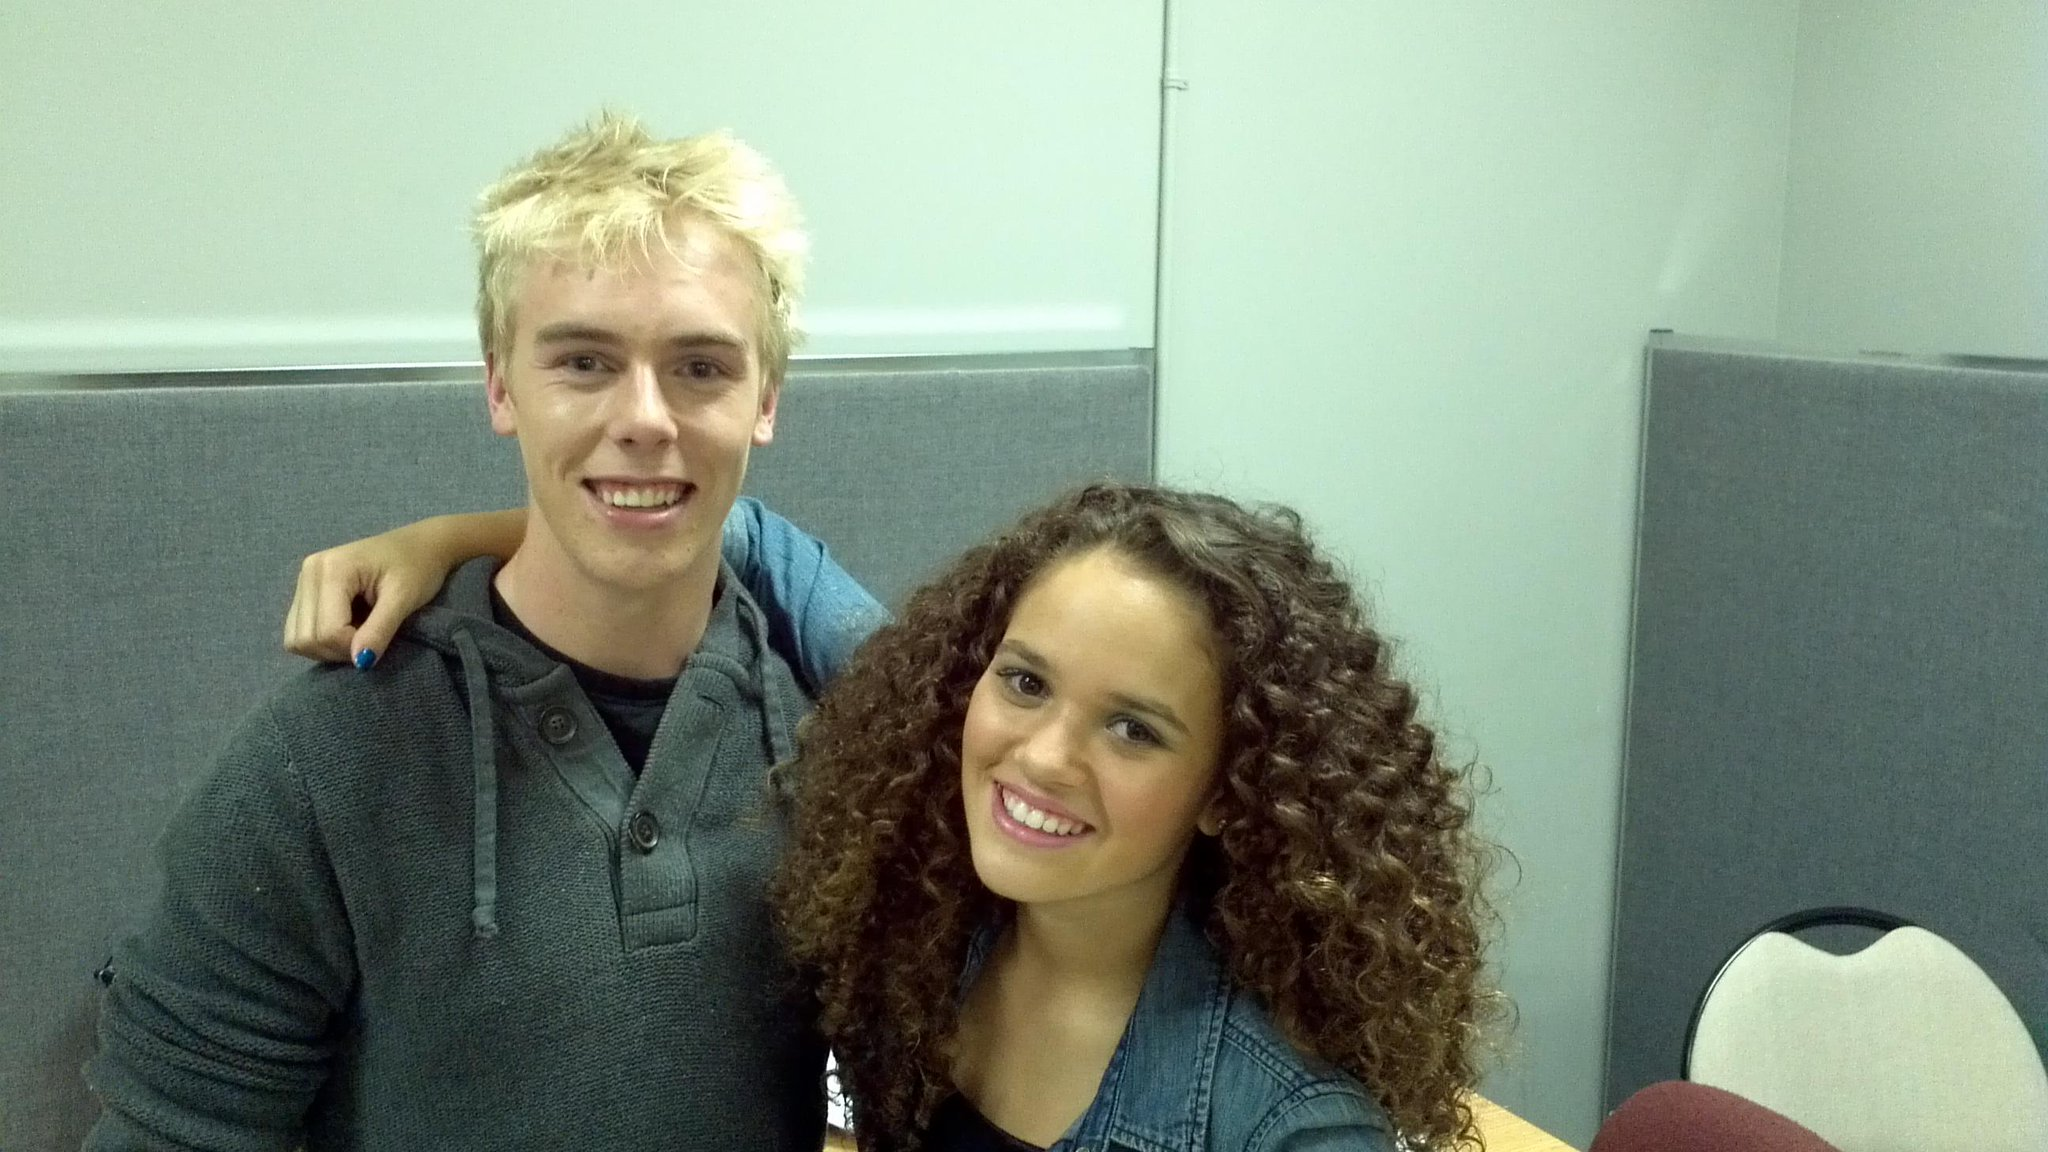 Cameron Kennedy On Twitter Have A Good Life Madisonpettis22 Lol Great Working With You On Lifewithboys Onset Http T Co C796ice5 See what cameron kennedy (cameron_kennedy1882) has discovered on pinterest, the world's biggest collection of ideas. cameron kennedy on twitter have a